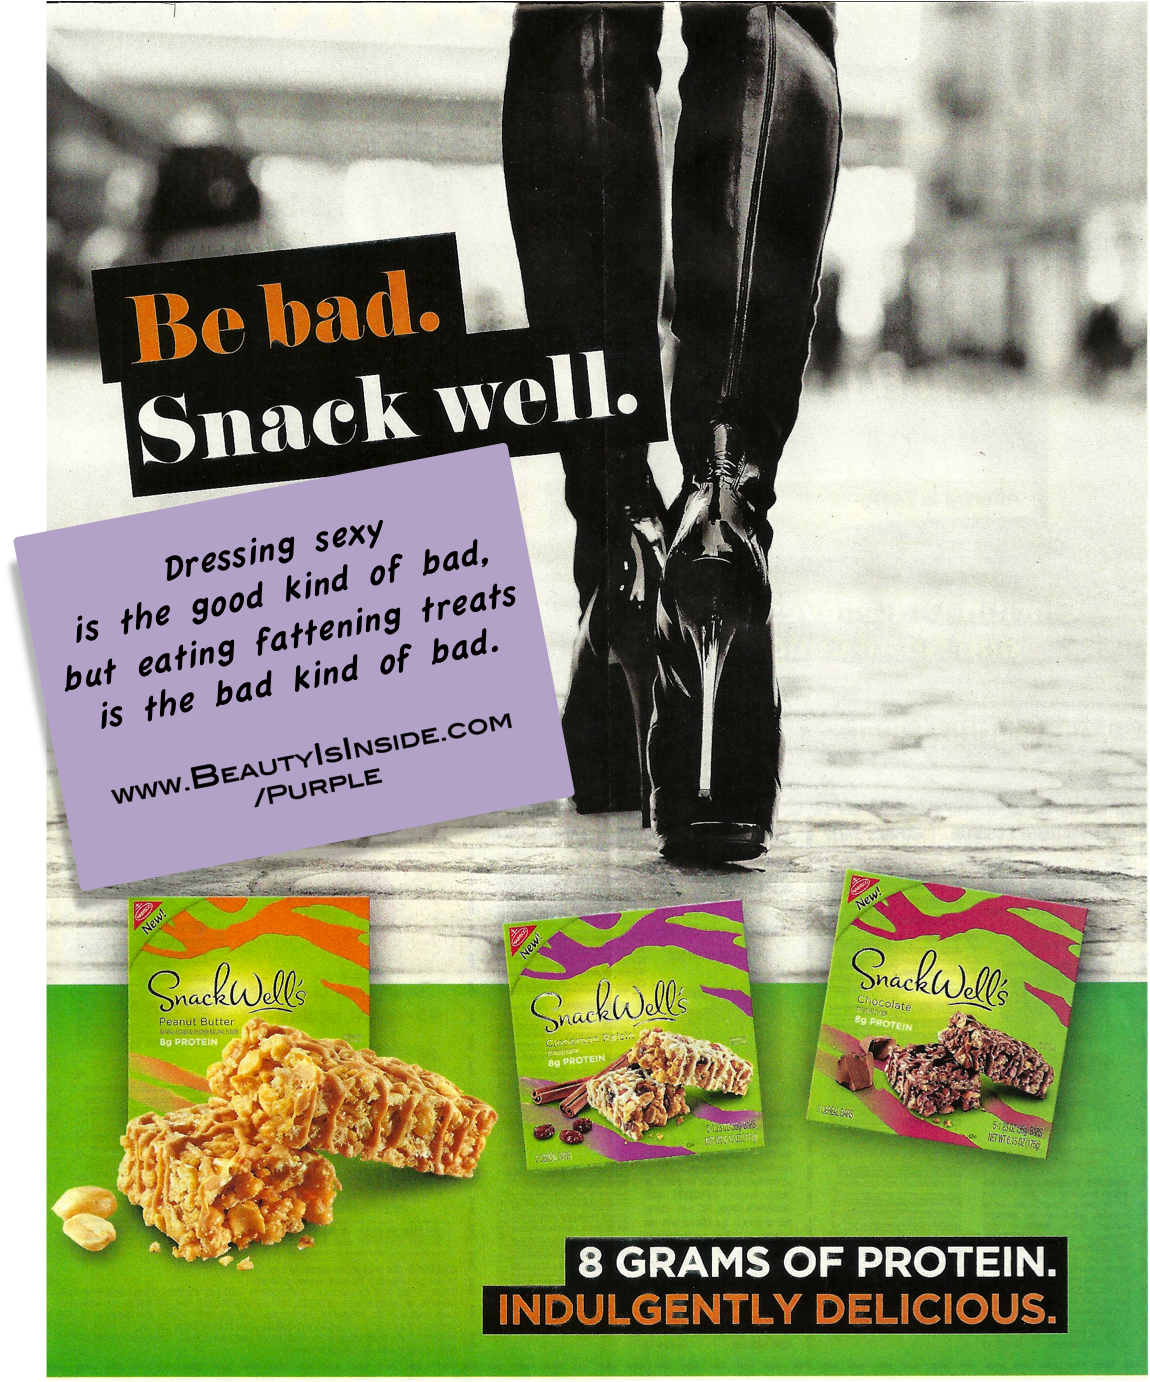 Snackwell's